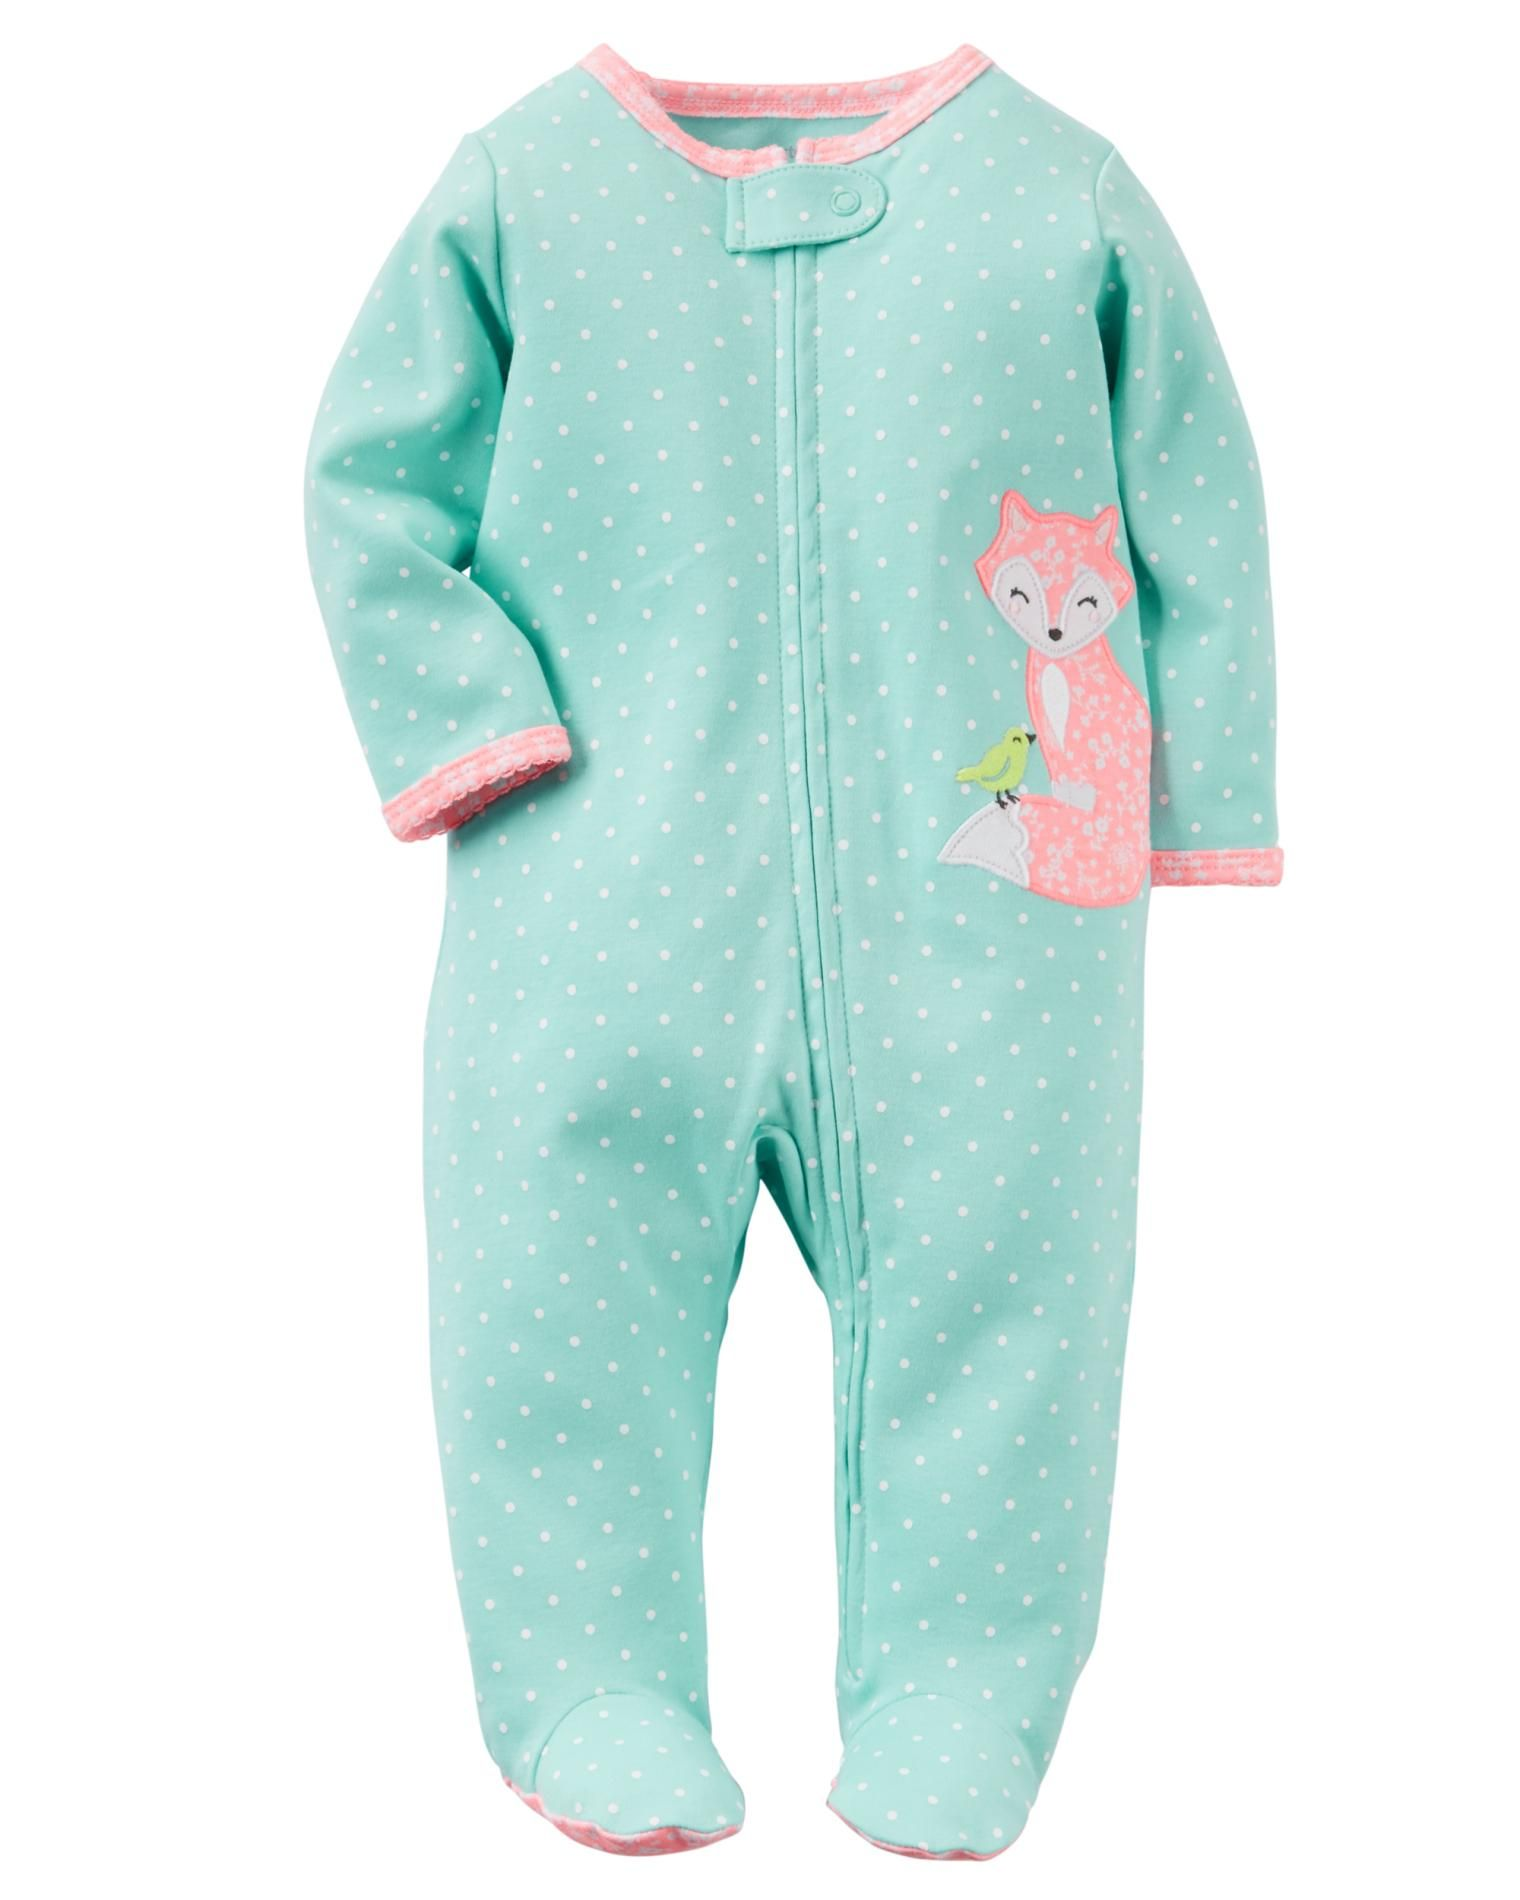 Sears Baby Clothes Enchanting Pinjune Poe On Scarlett  Pinterest  Babies Babies Clothes And